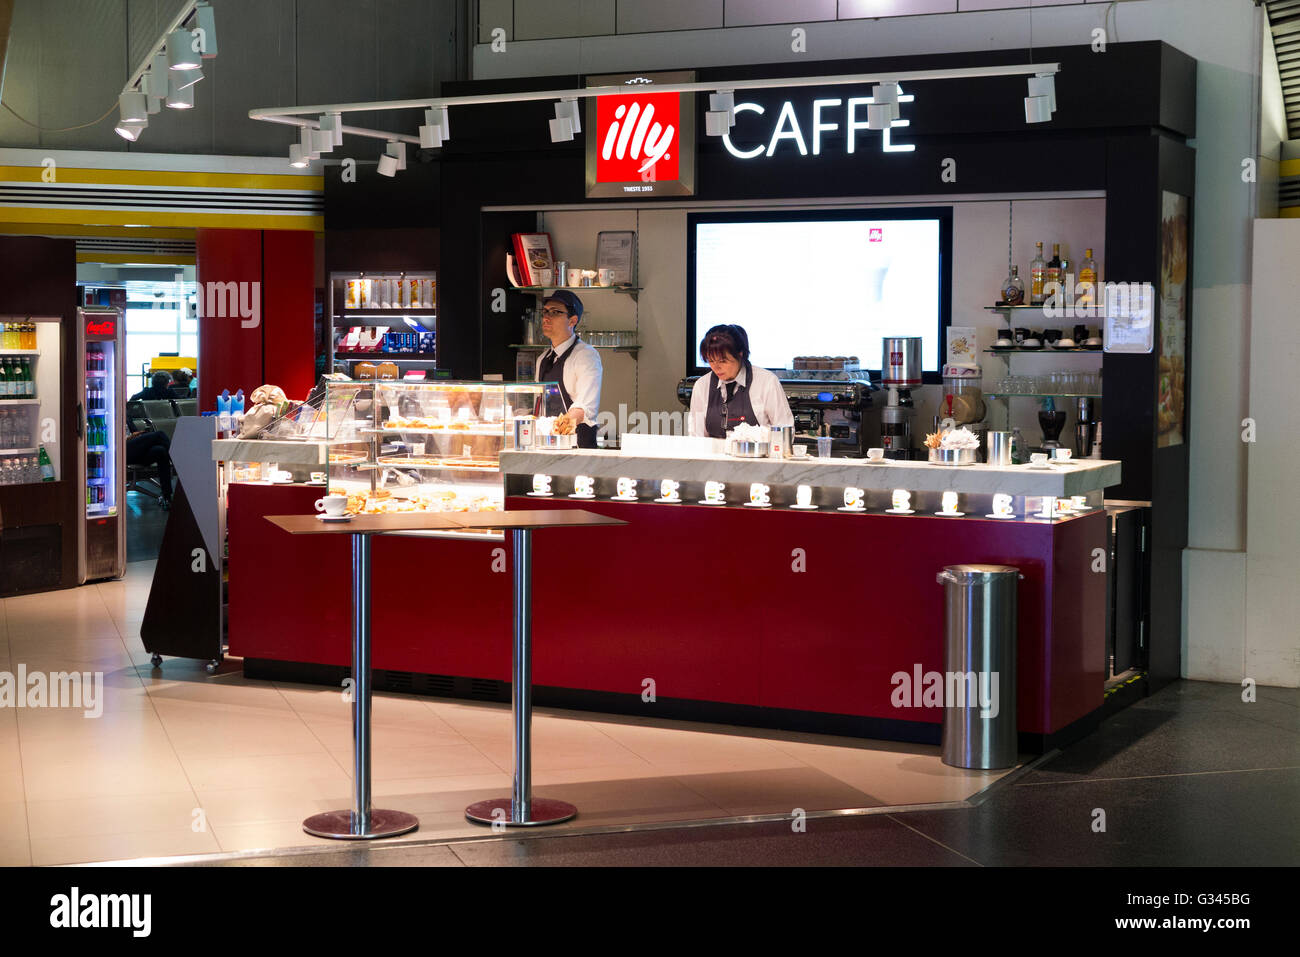 Illy Coffee Drinks